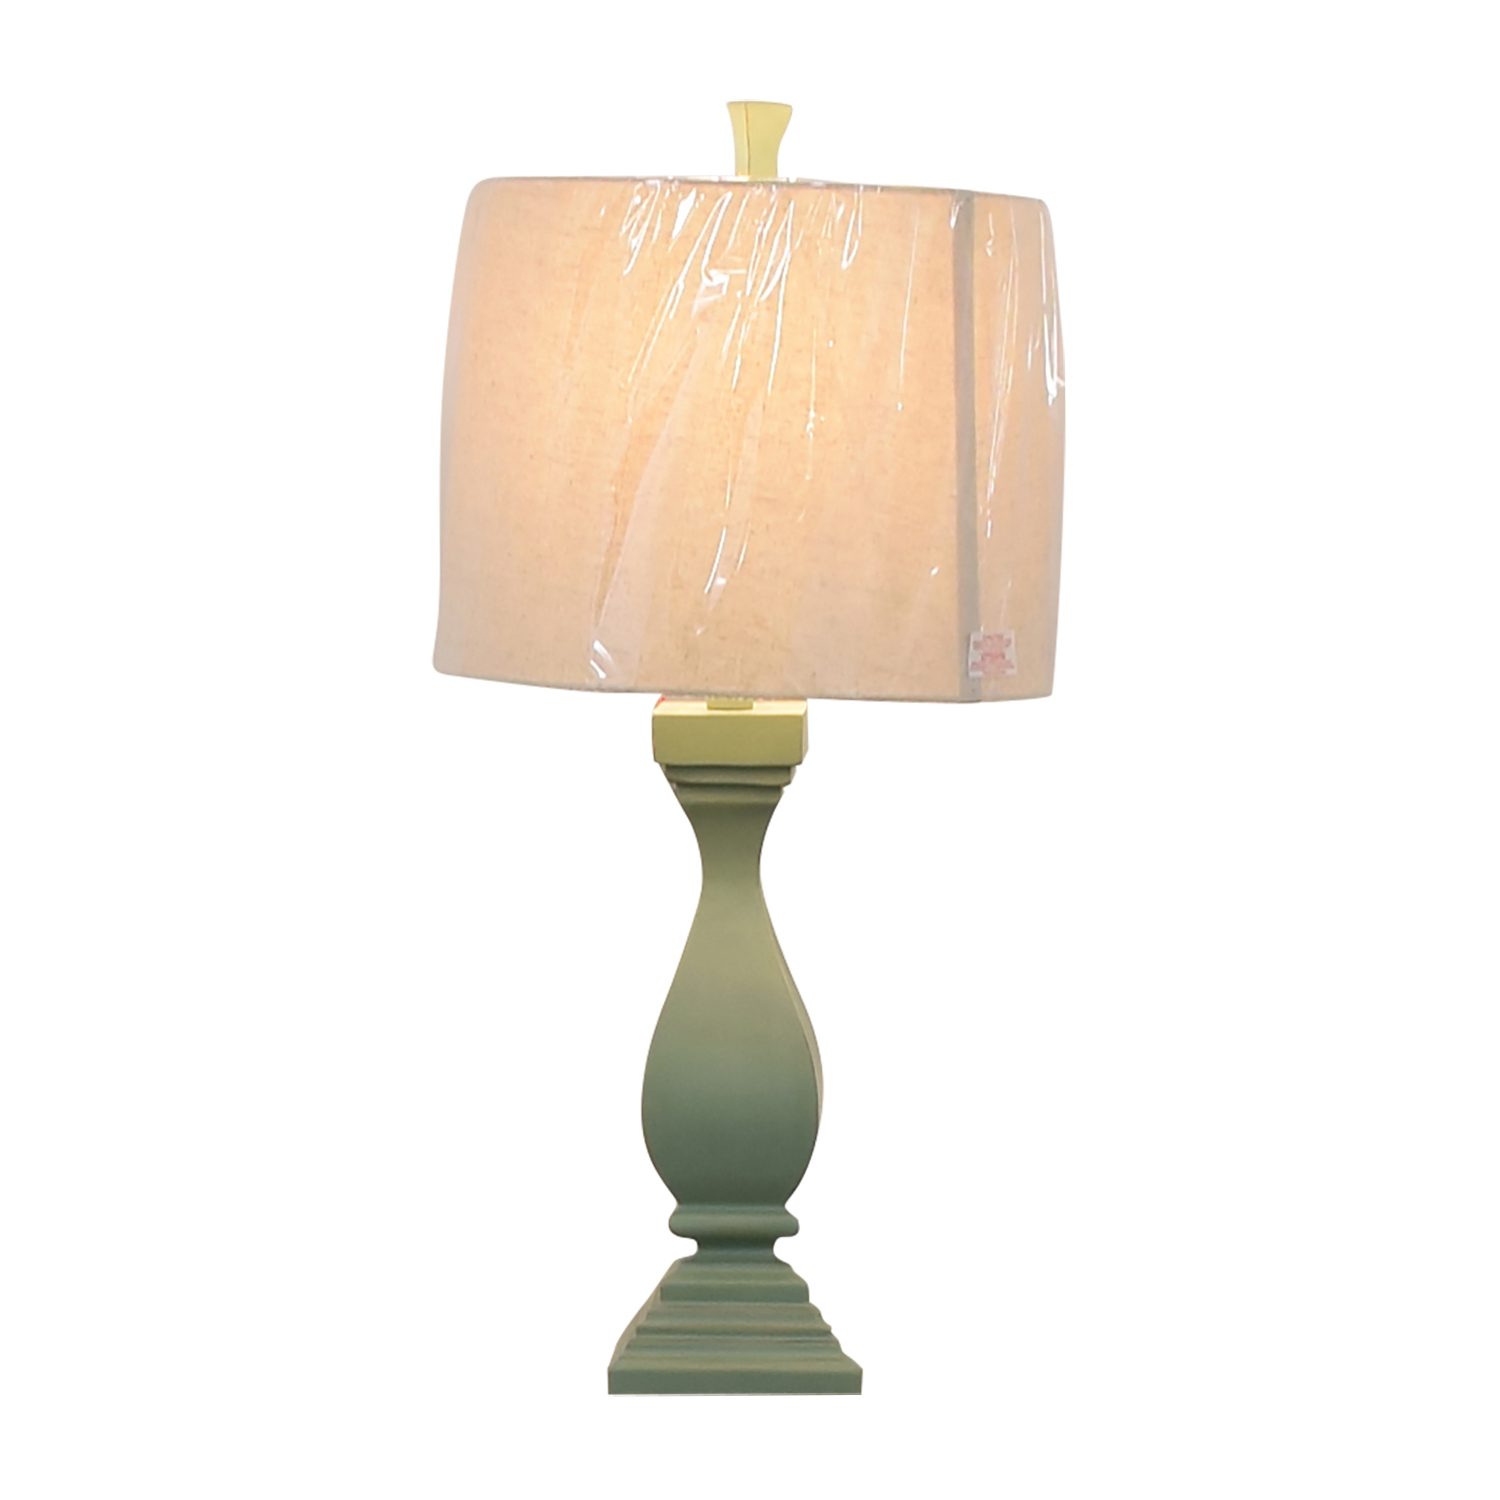 Lane Furniture Lane Furniture Green Table Lamp nyc